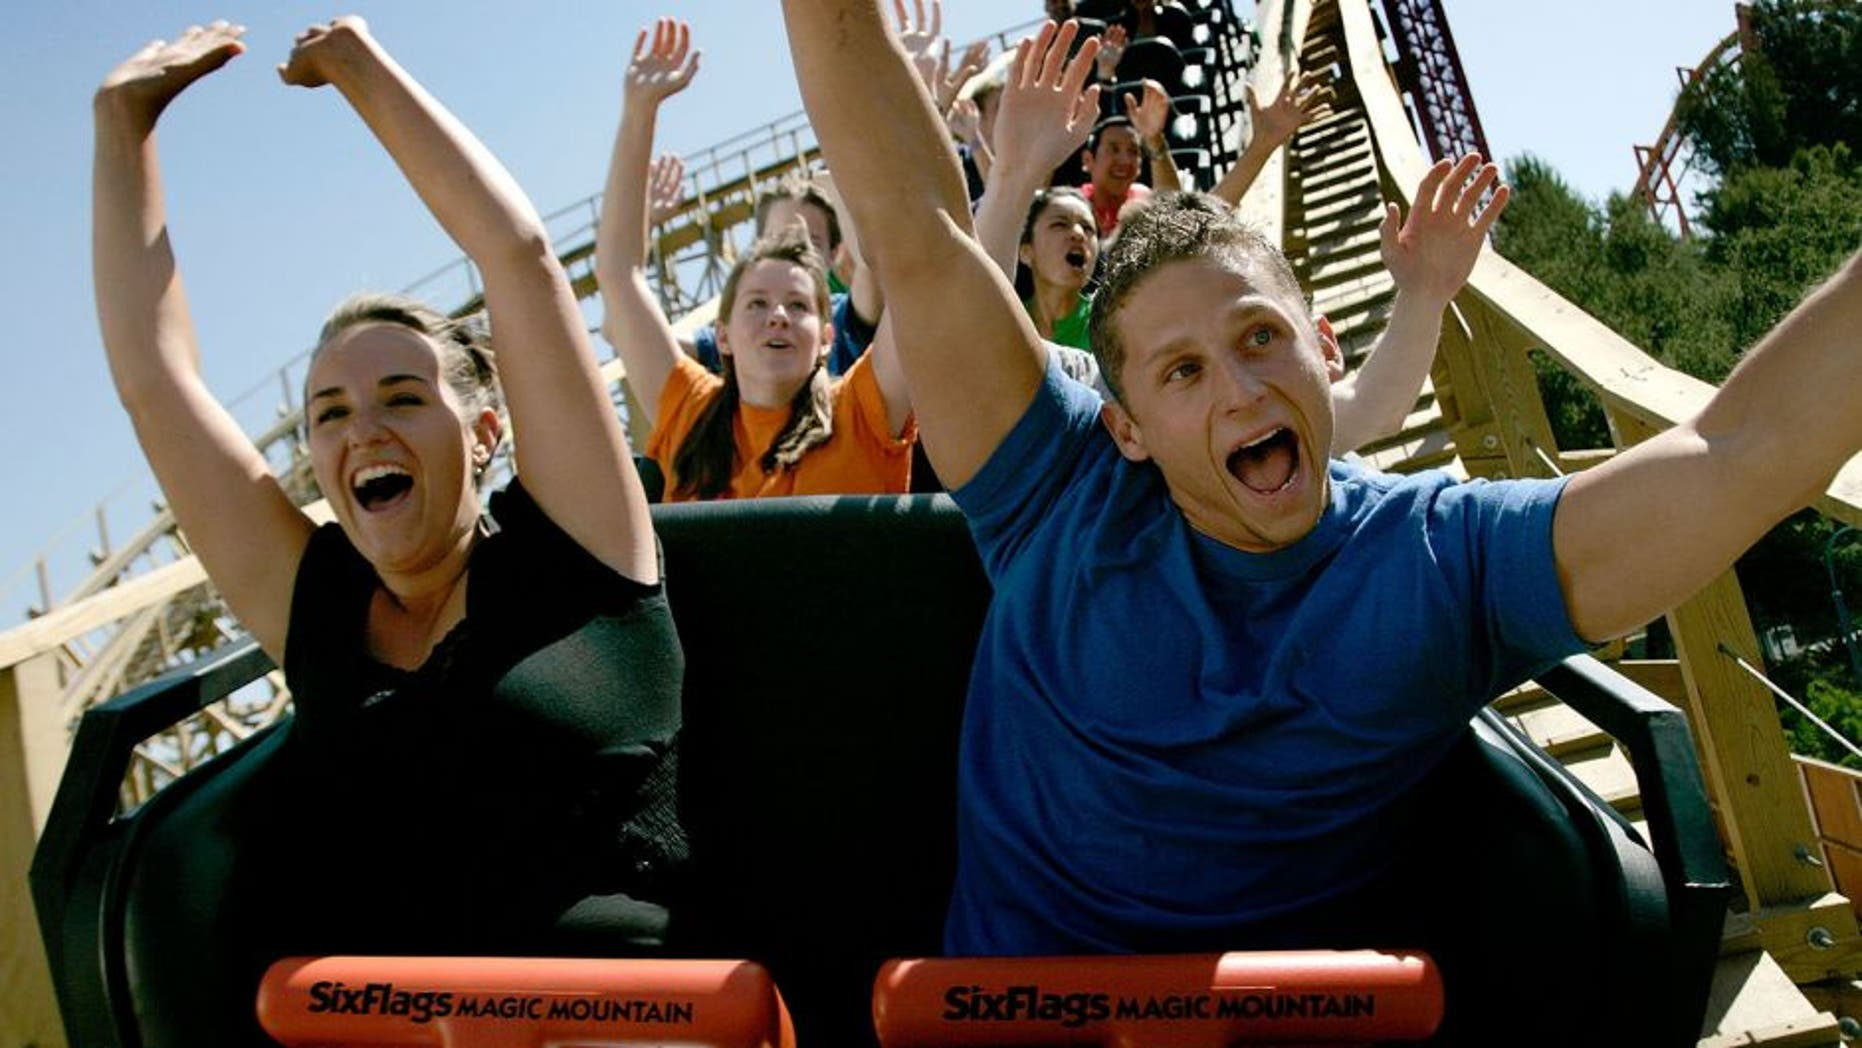 VALENCIA, CA - MAY 21: Park guests ride Terminator Salvation at the Terminator Salvation: The Ride Media Day at Six Flags Magic Mountain on May 21, 2009 in Valencia, California. (Photo by Mathew Imaging/WireImage)